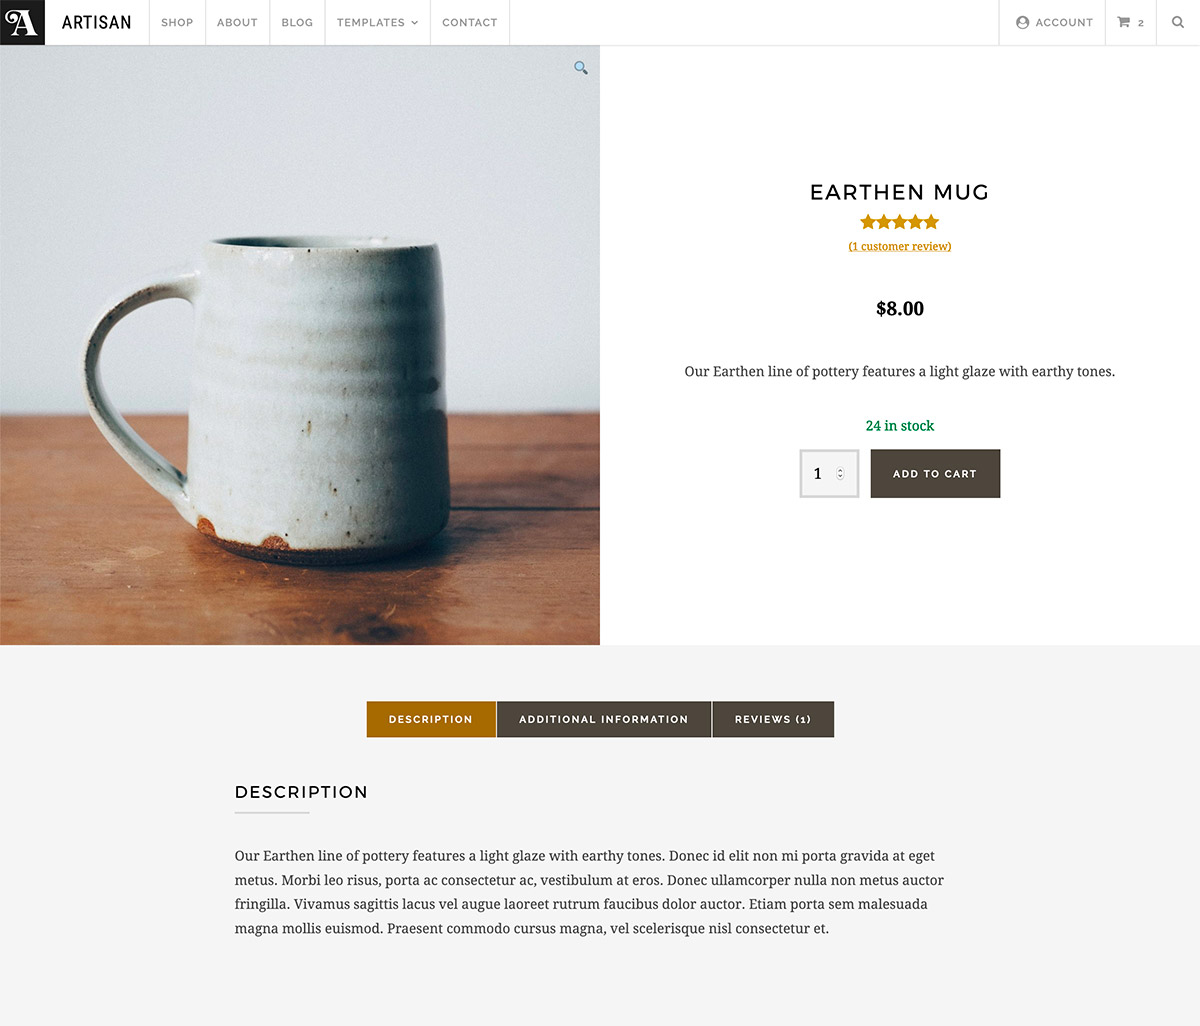 Artisan Product Page